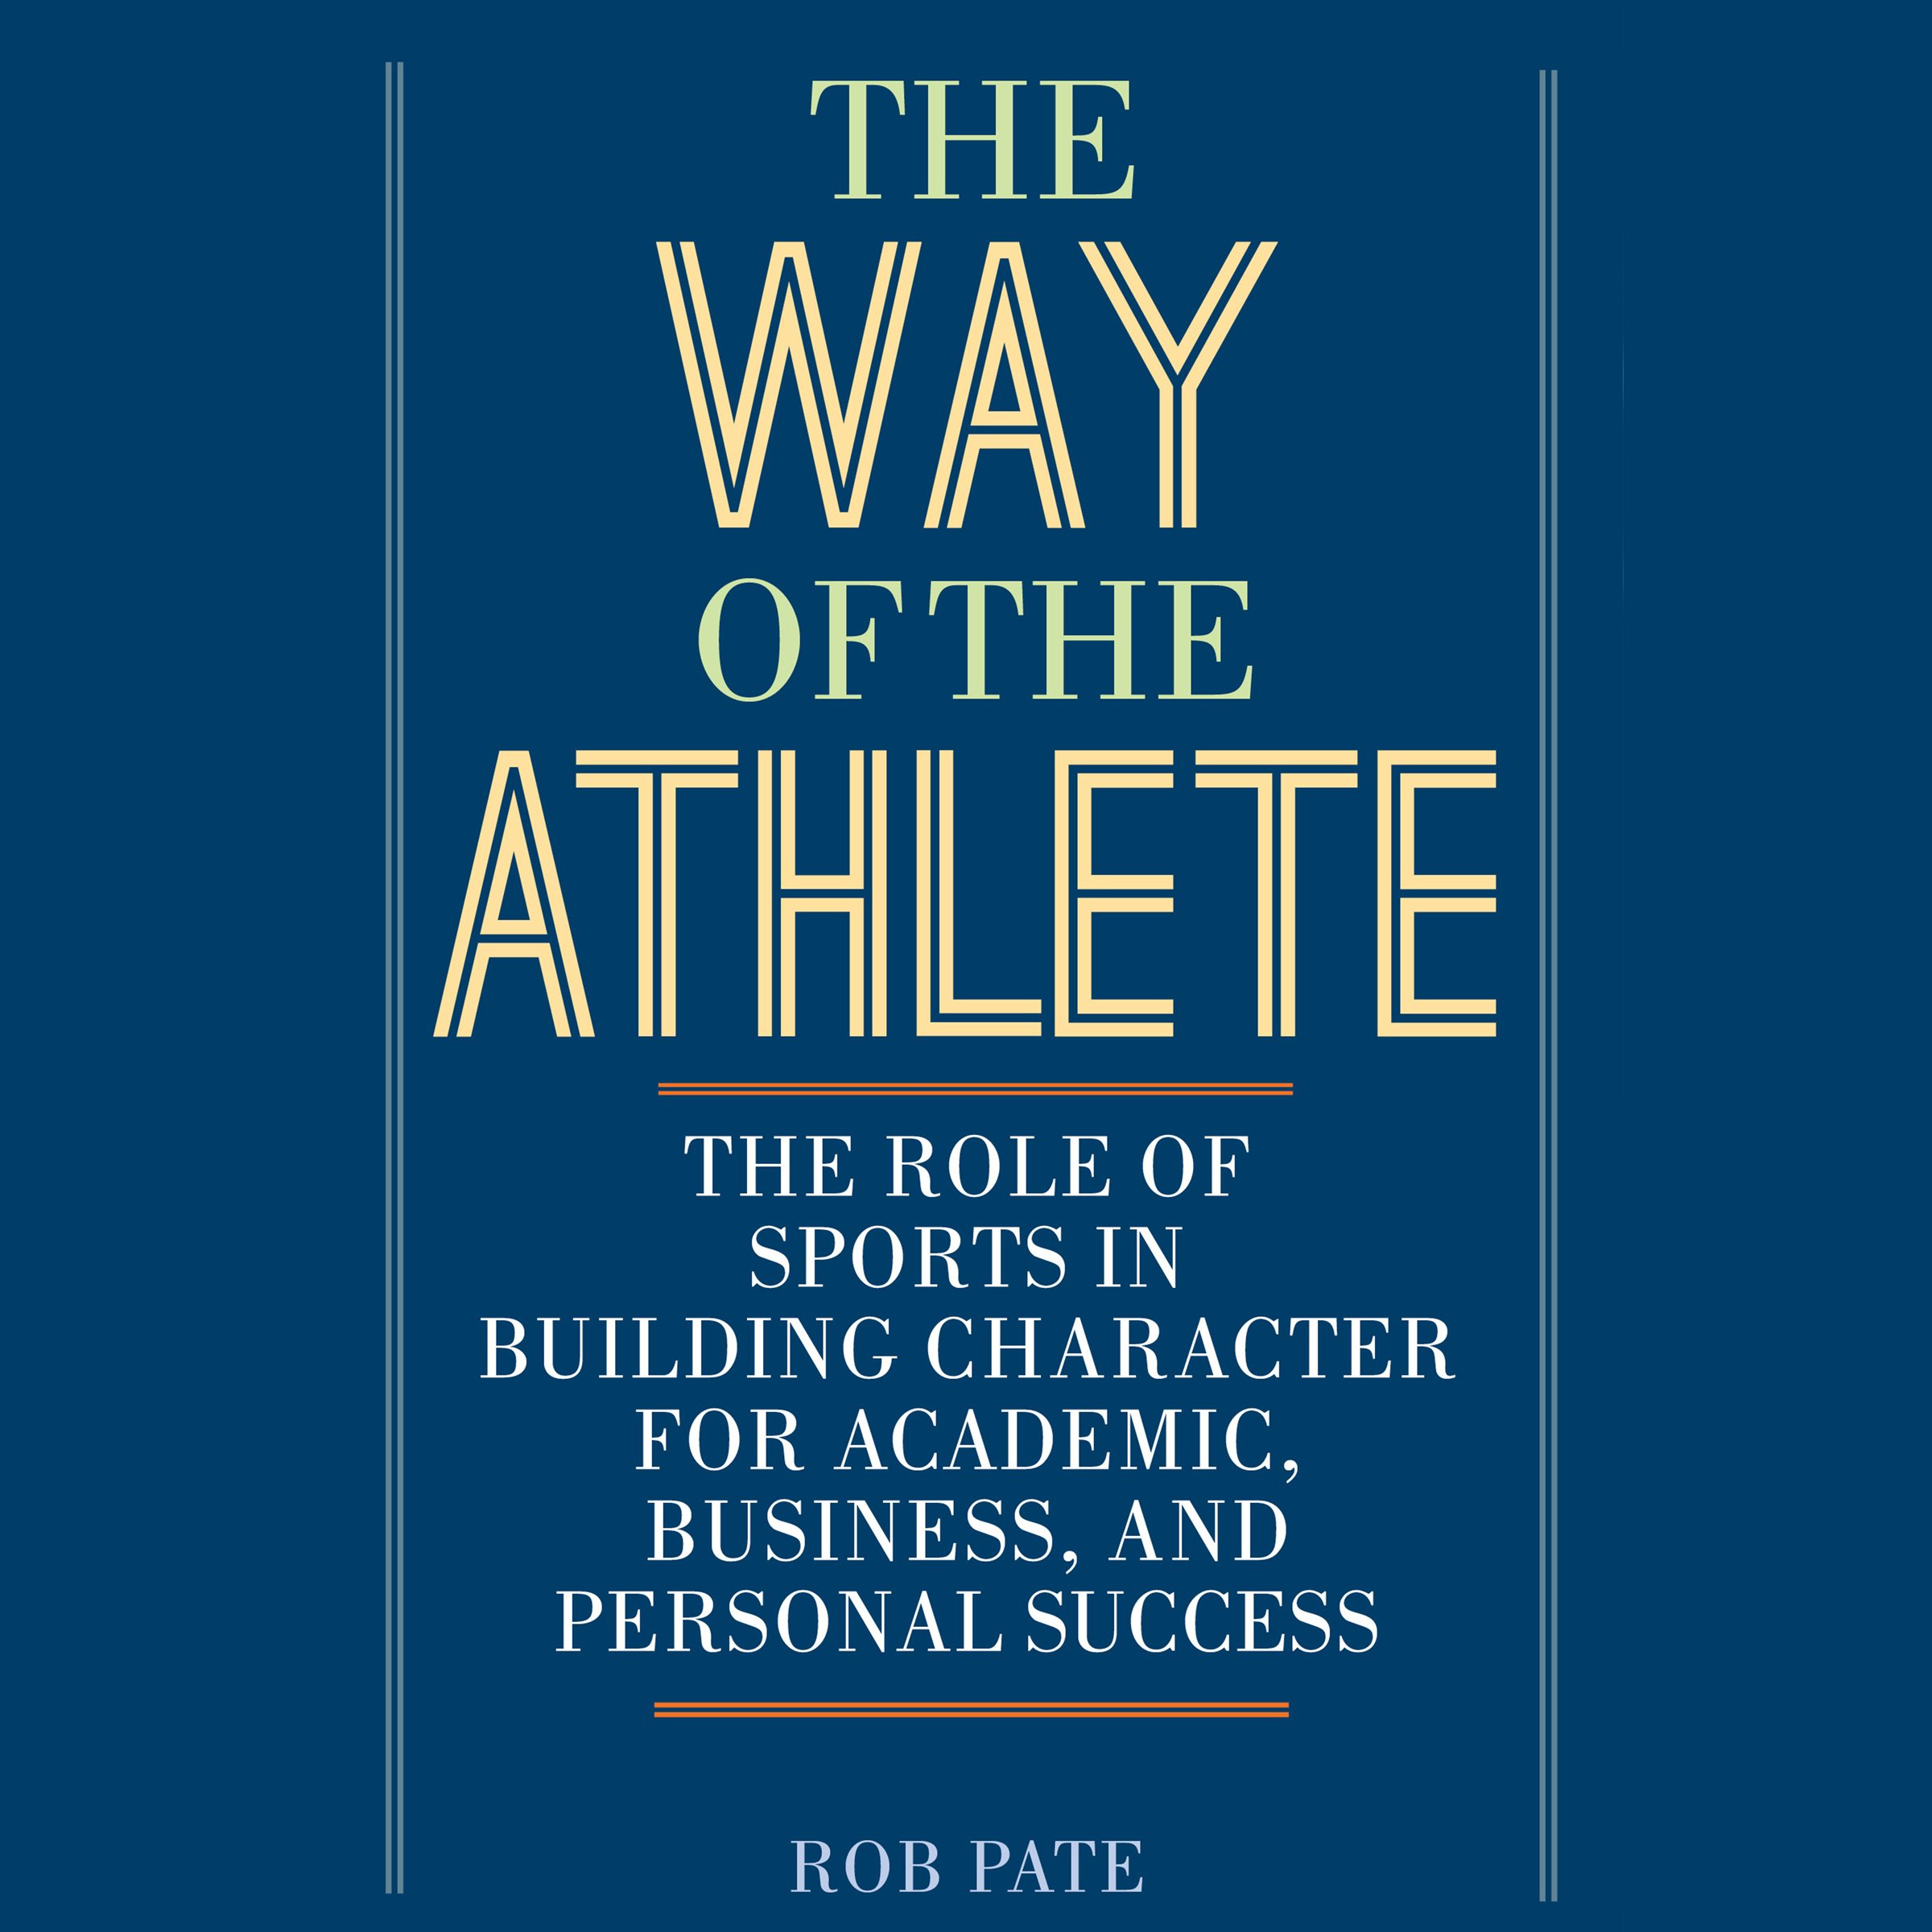 The Way of the Athlete: The Role of Sports in Building Character for Academic, Business, and Personal Success